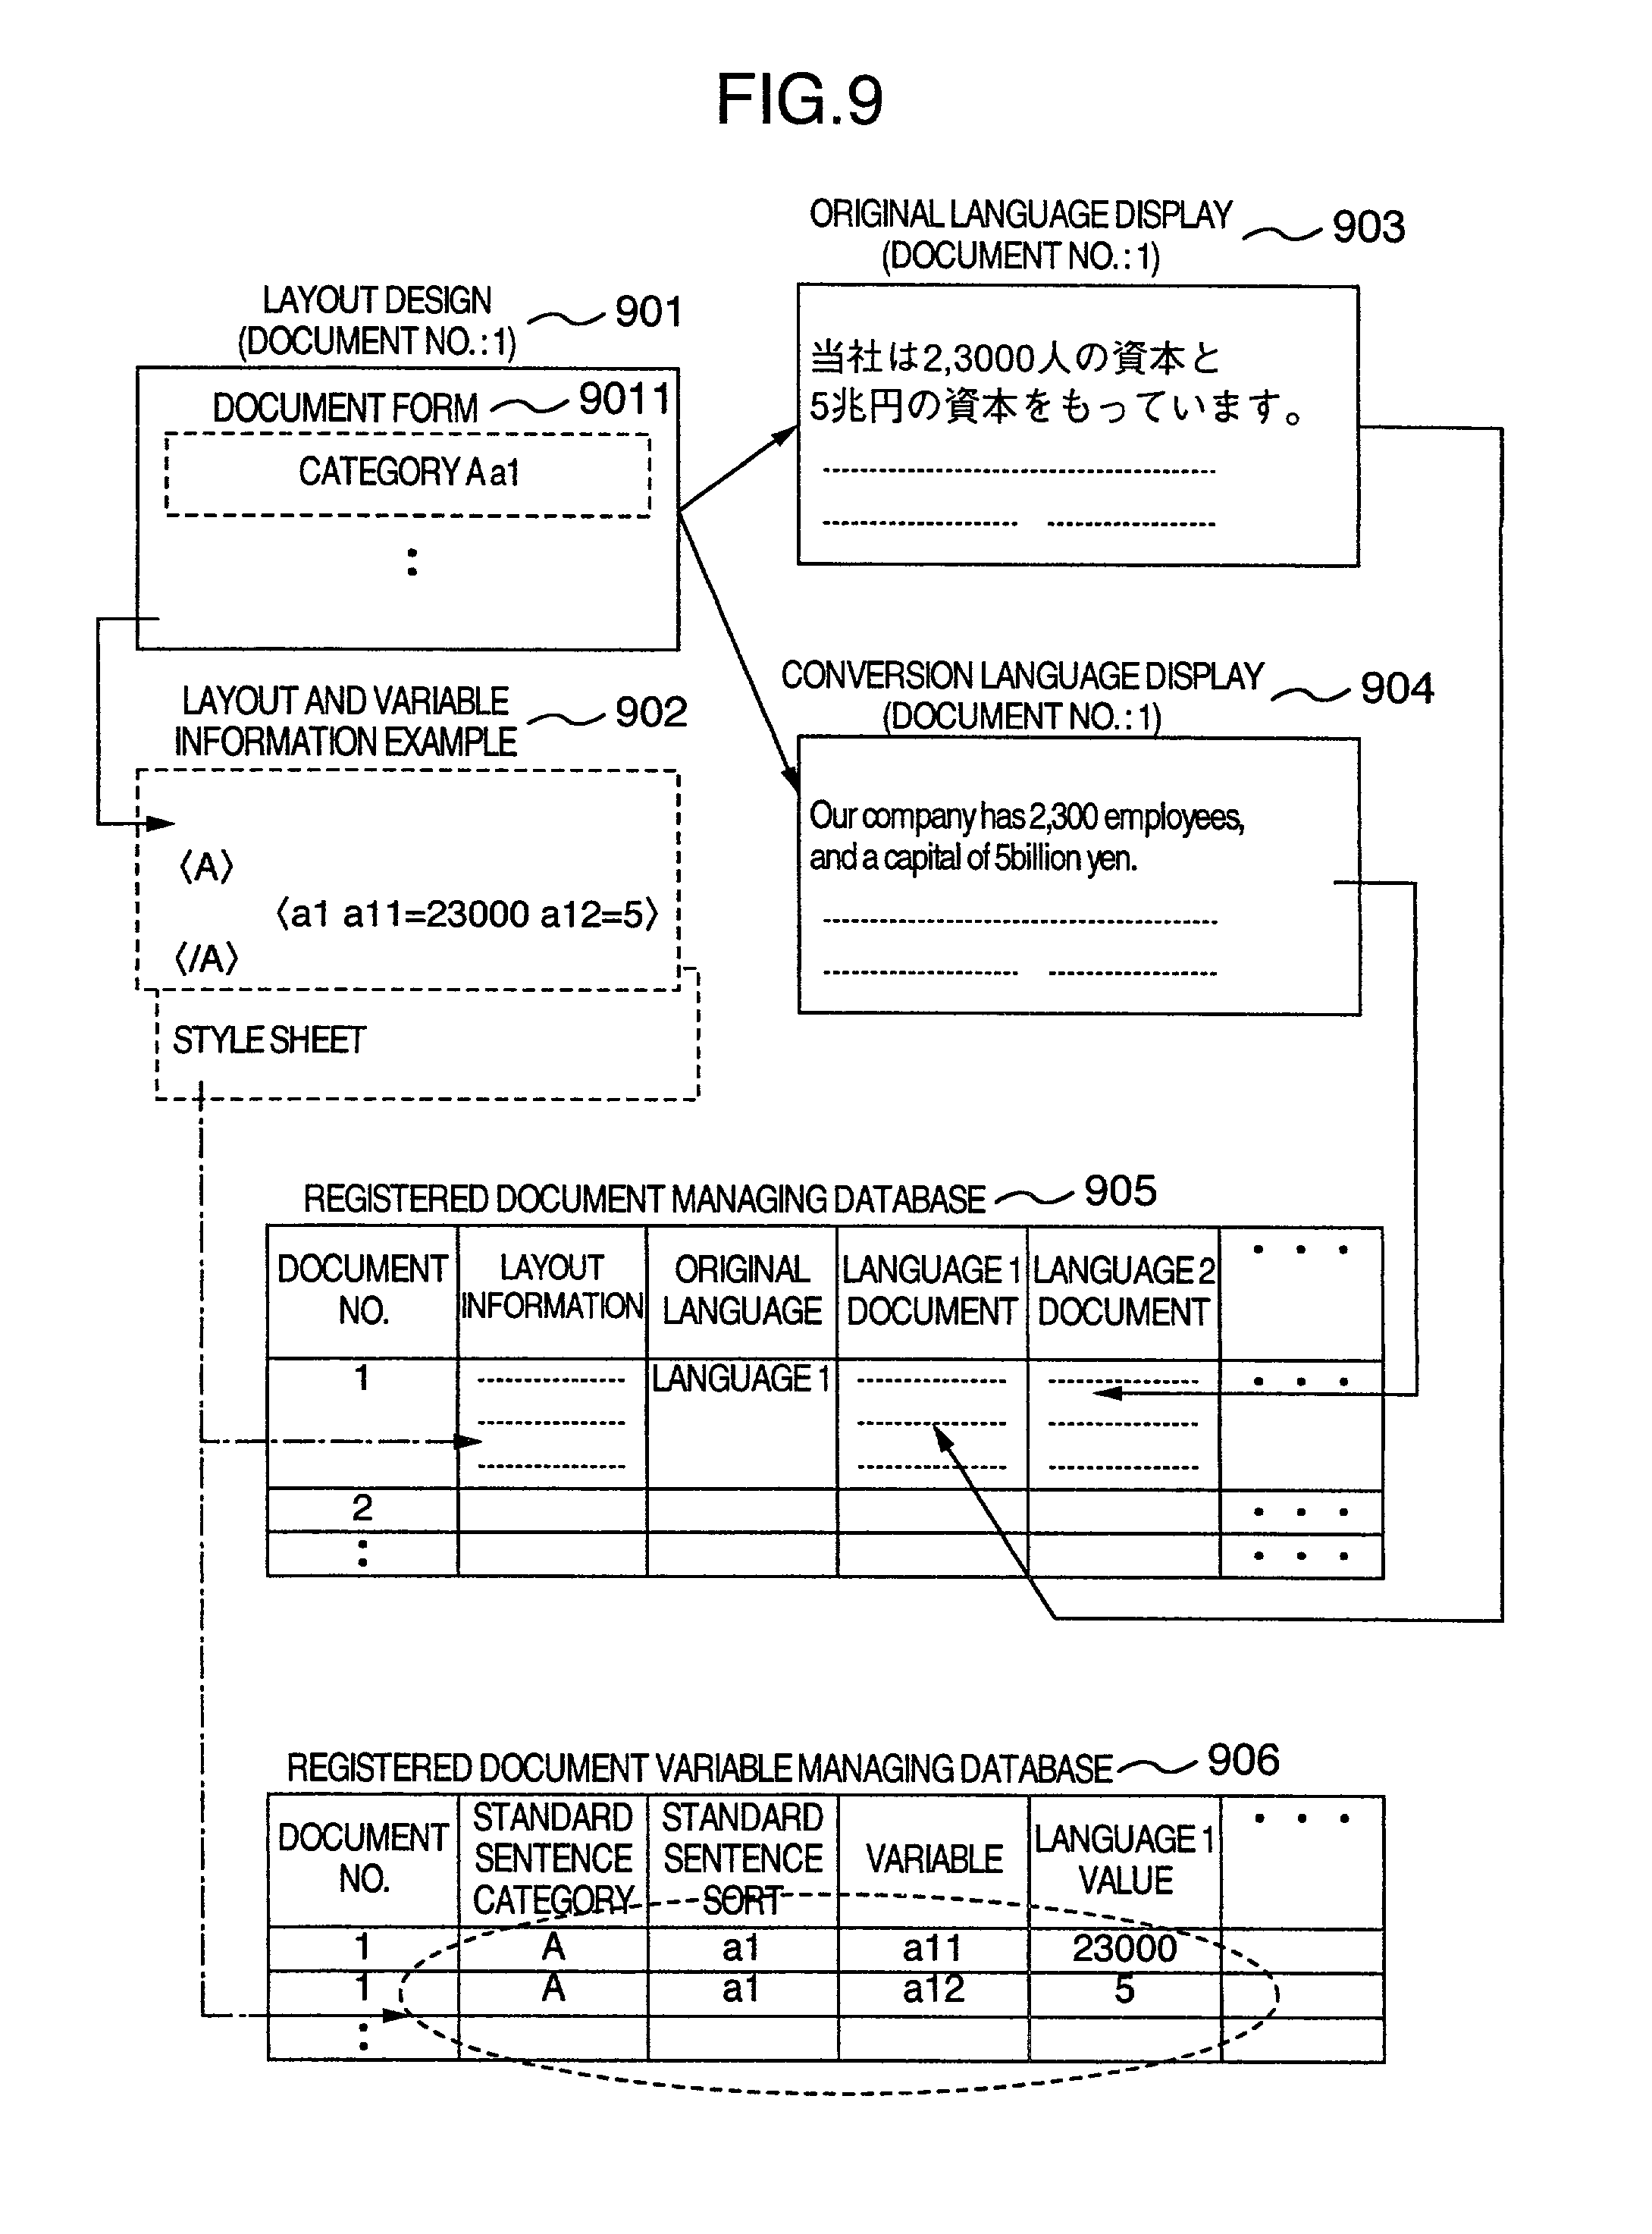 patent drawing - Multilingual Database Design